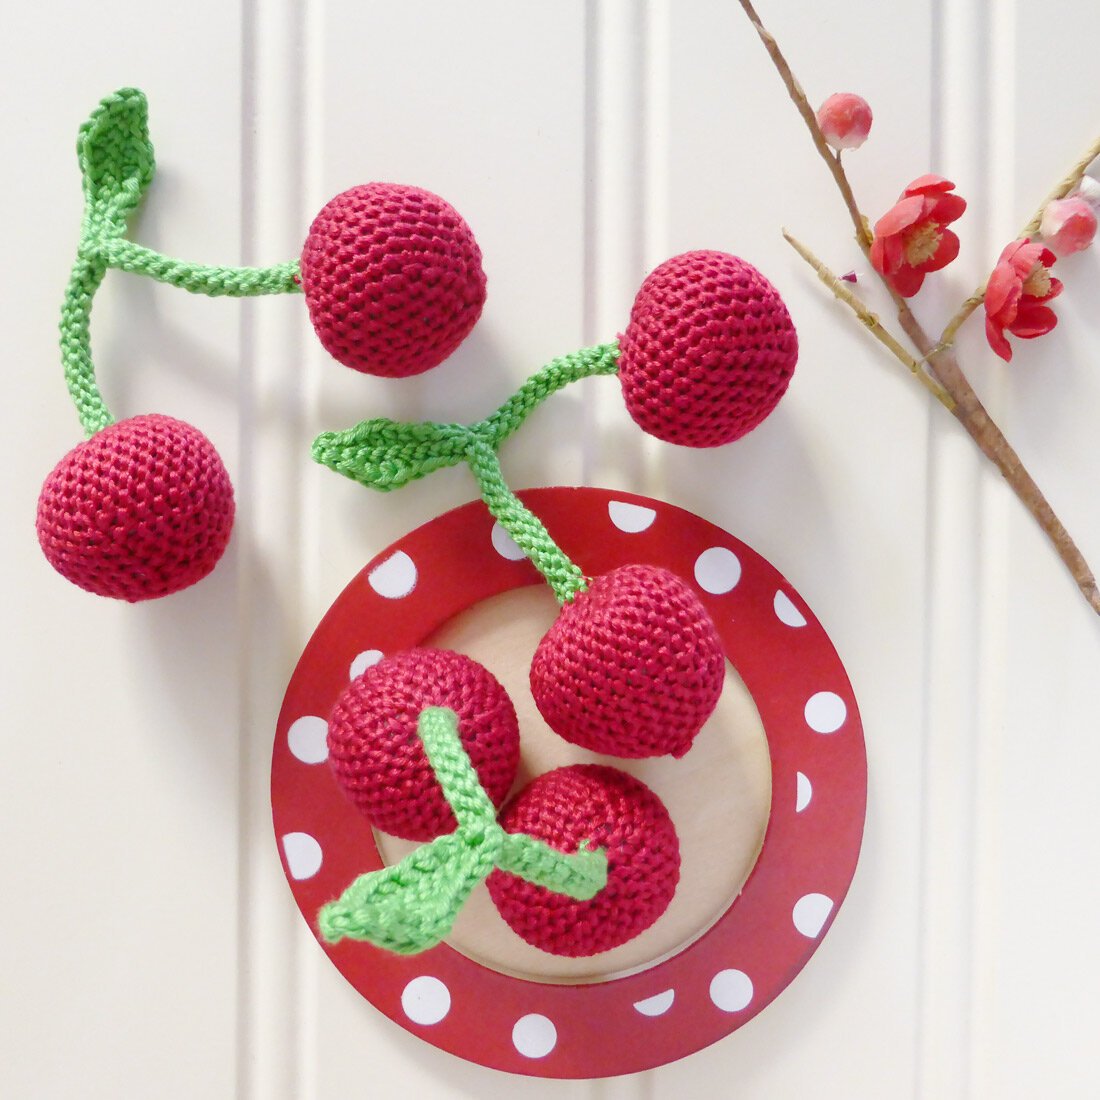 Crocheted-cherries-Sept-2019.jpg